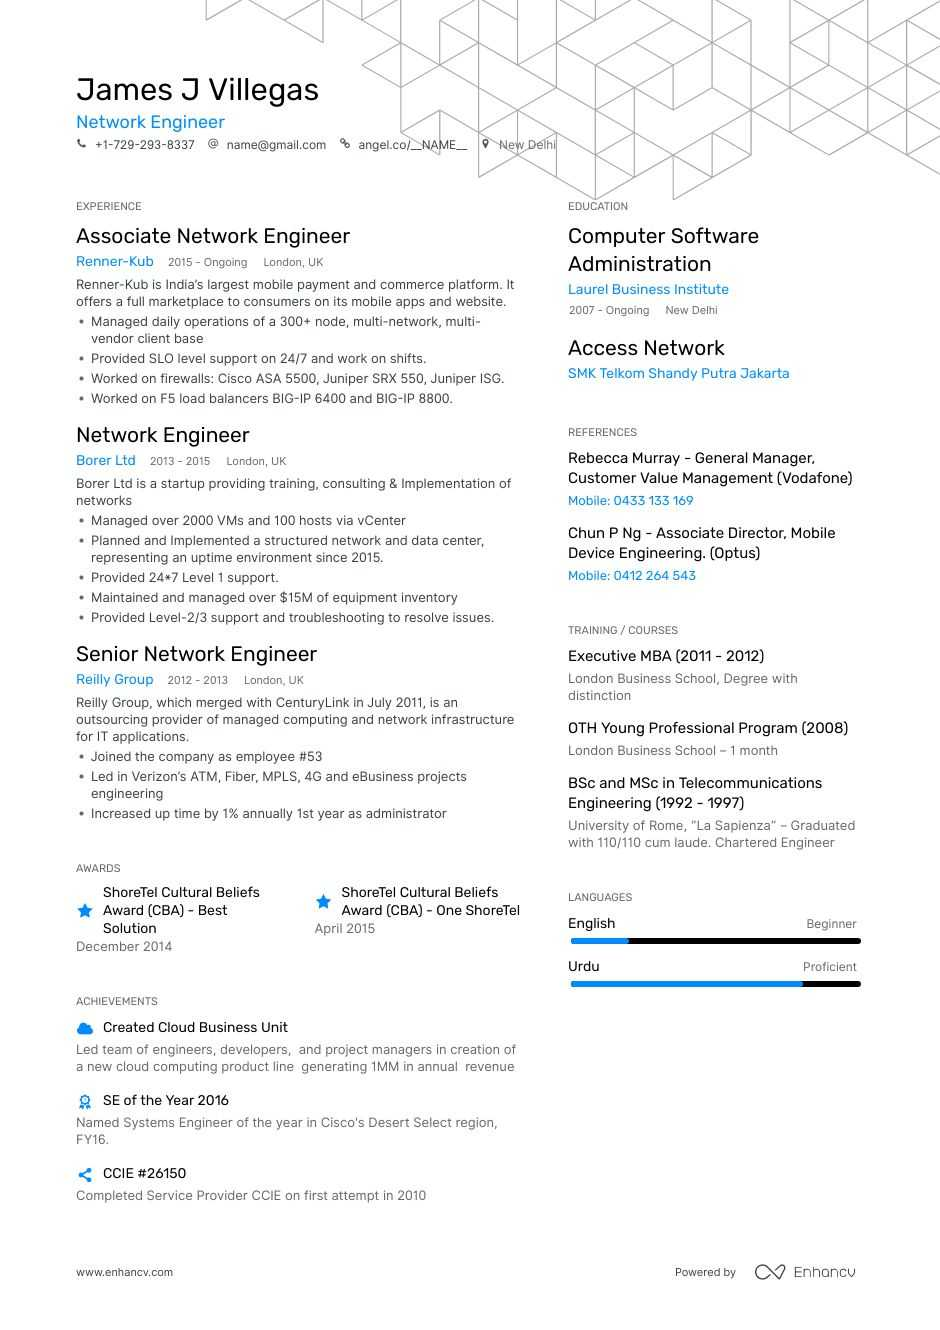 network engineer resume step ultimate guide for enhancv escalation public affairs Resume Escalation Engineer Resume